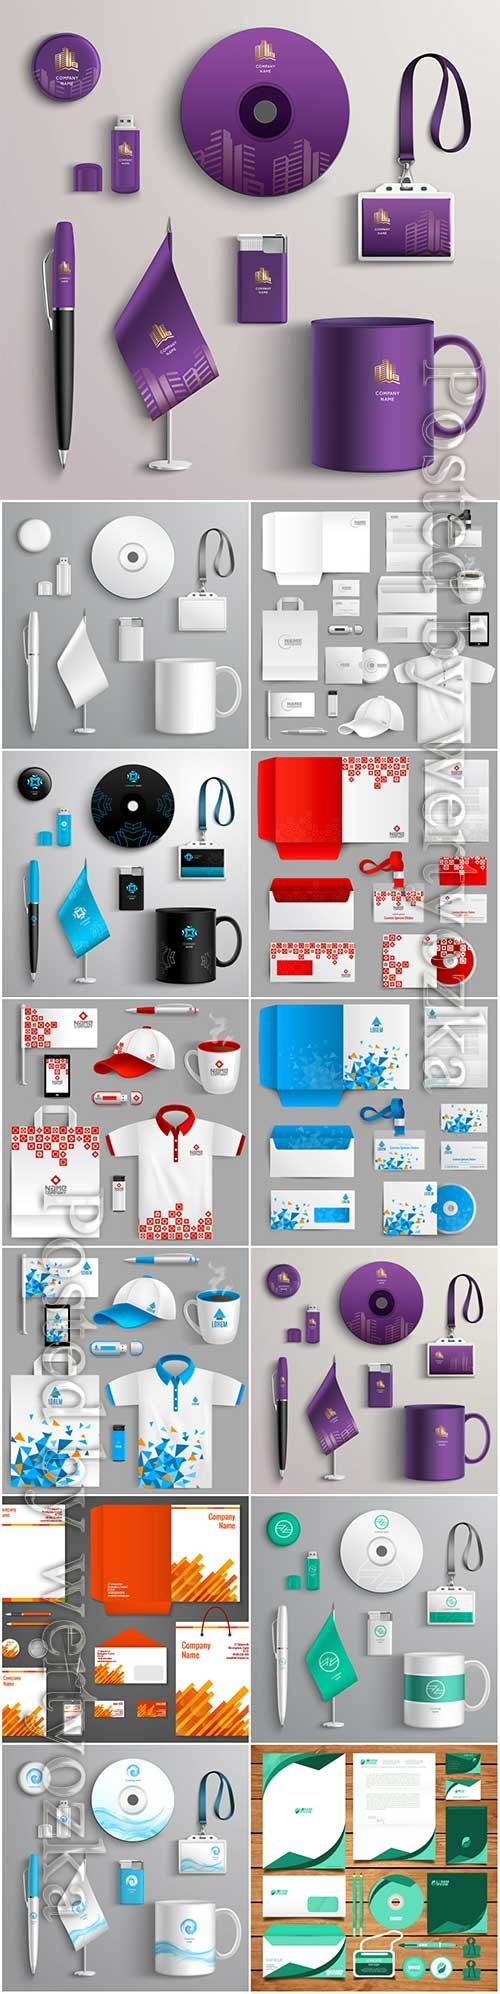 Corporate identity vector design